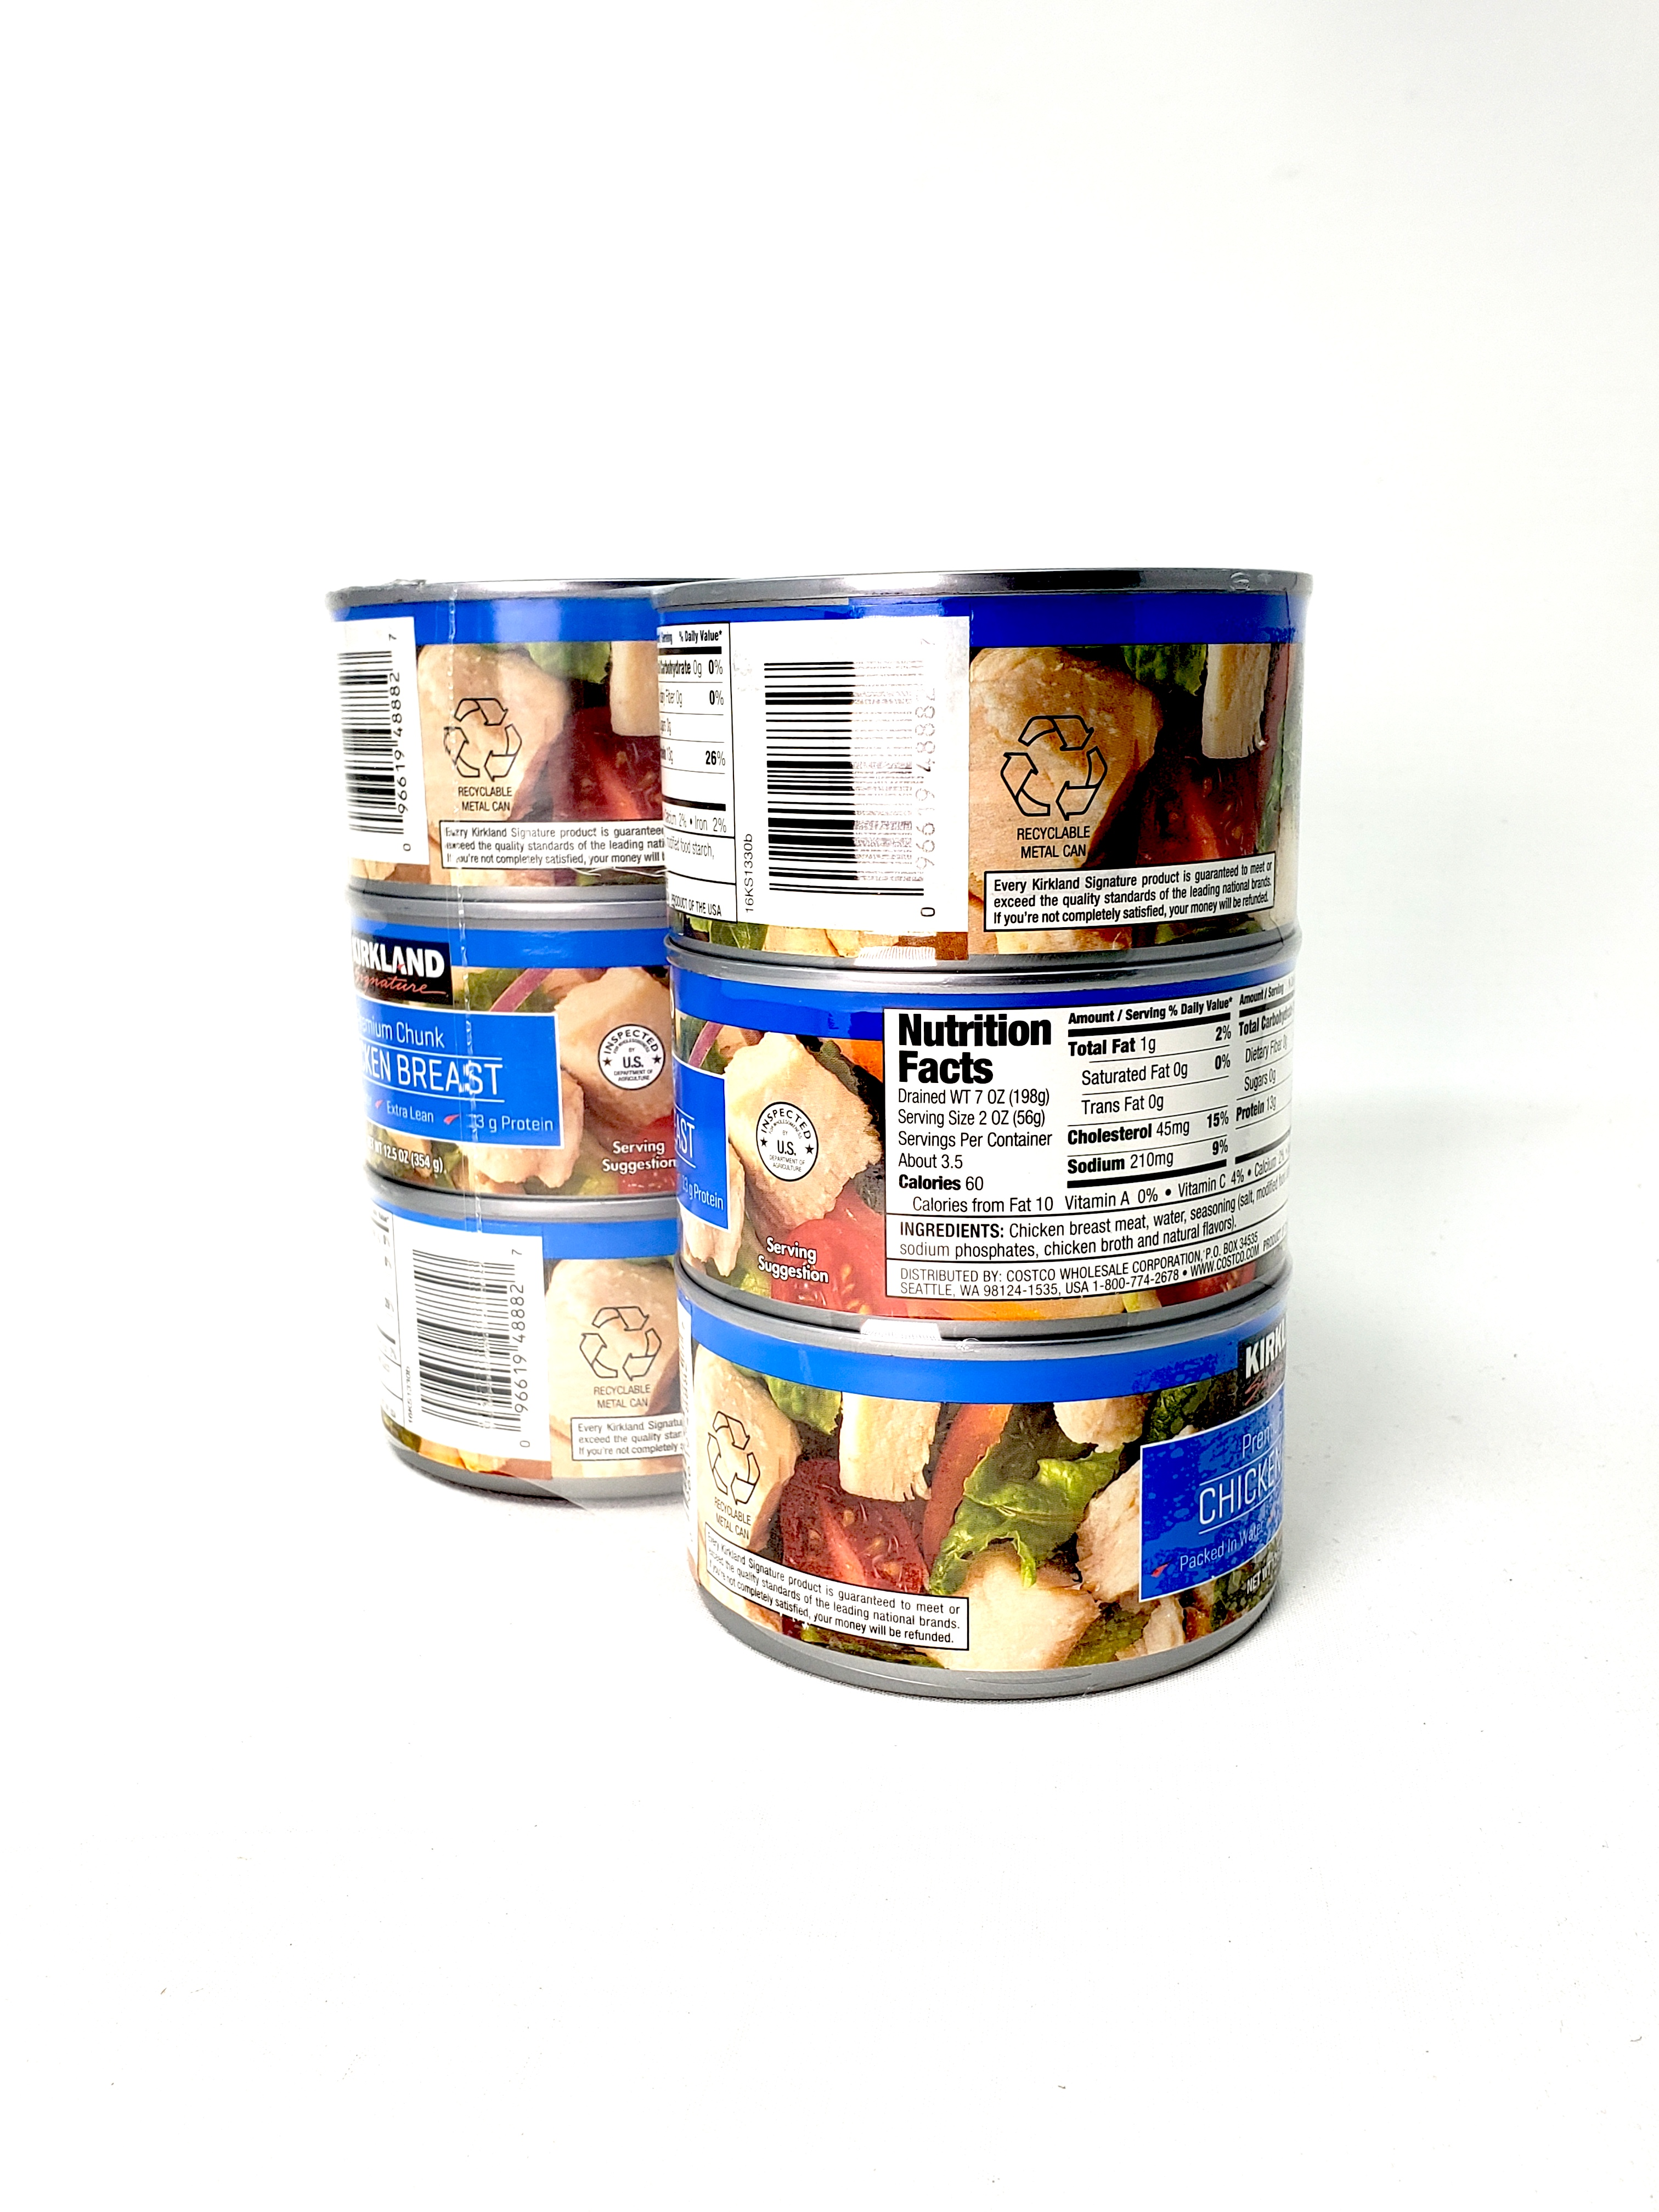 Canned food supplies prepare for emergencies